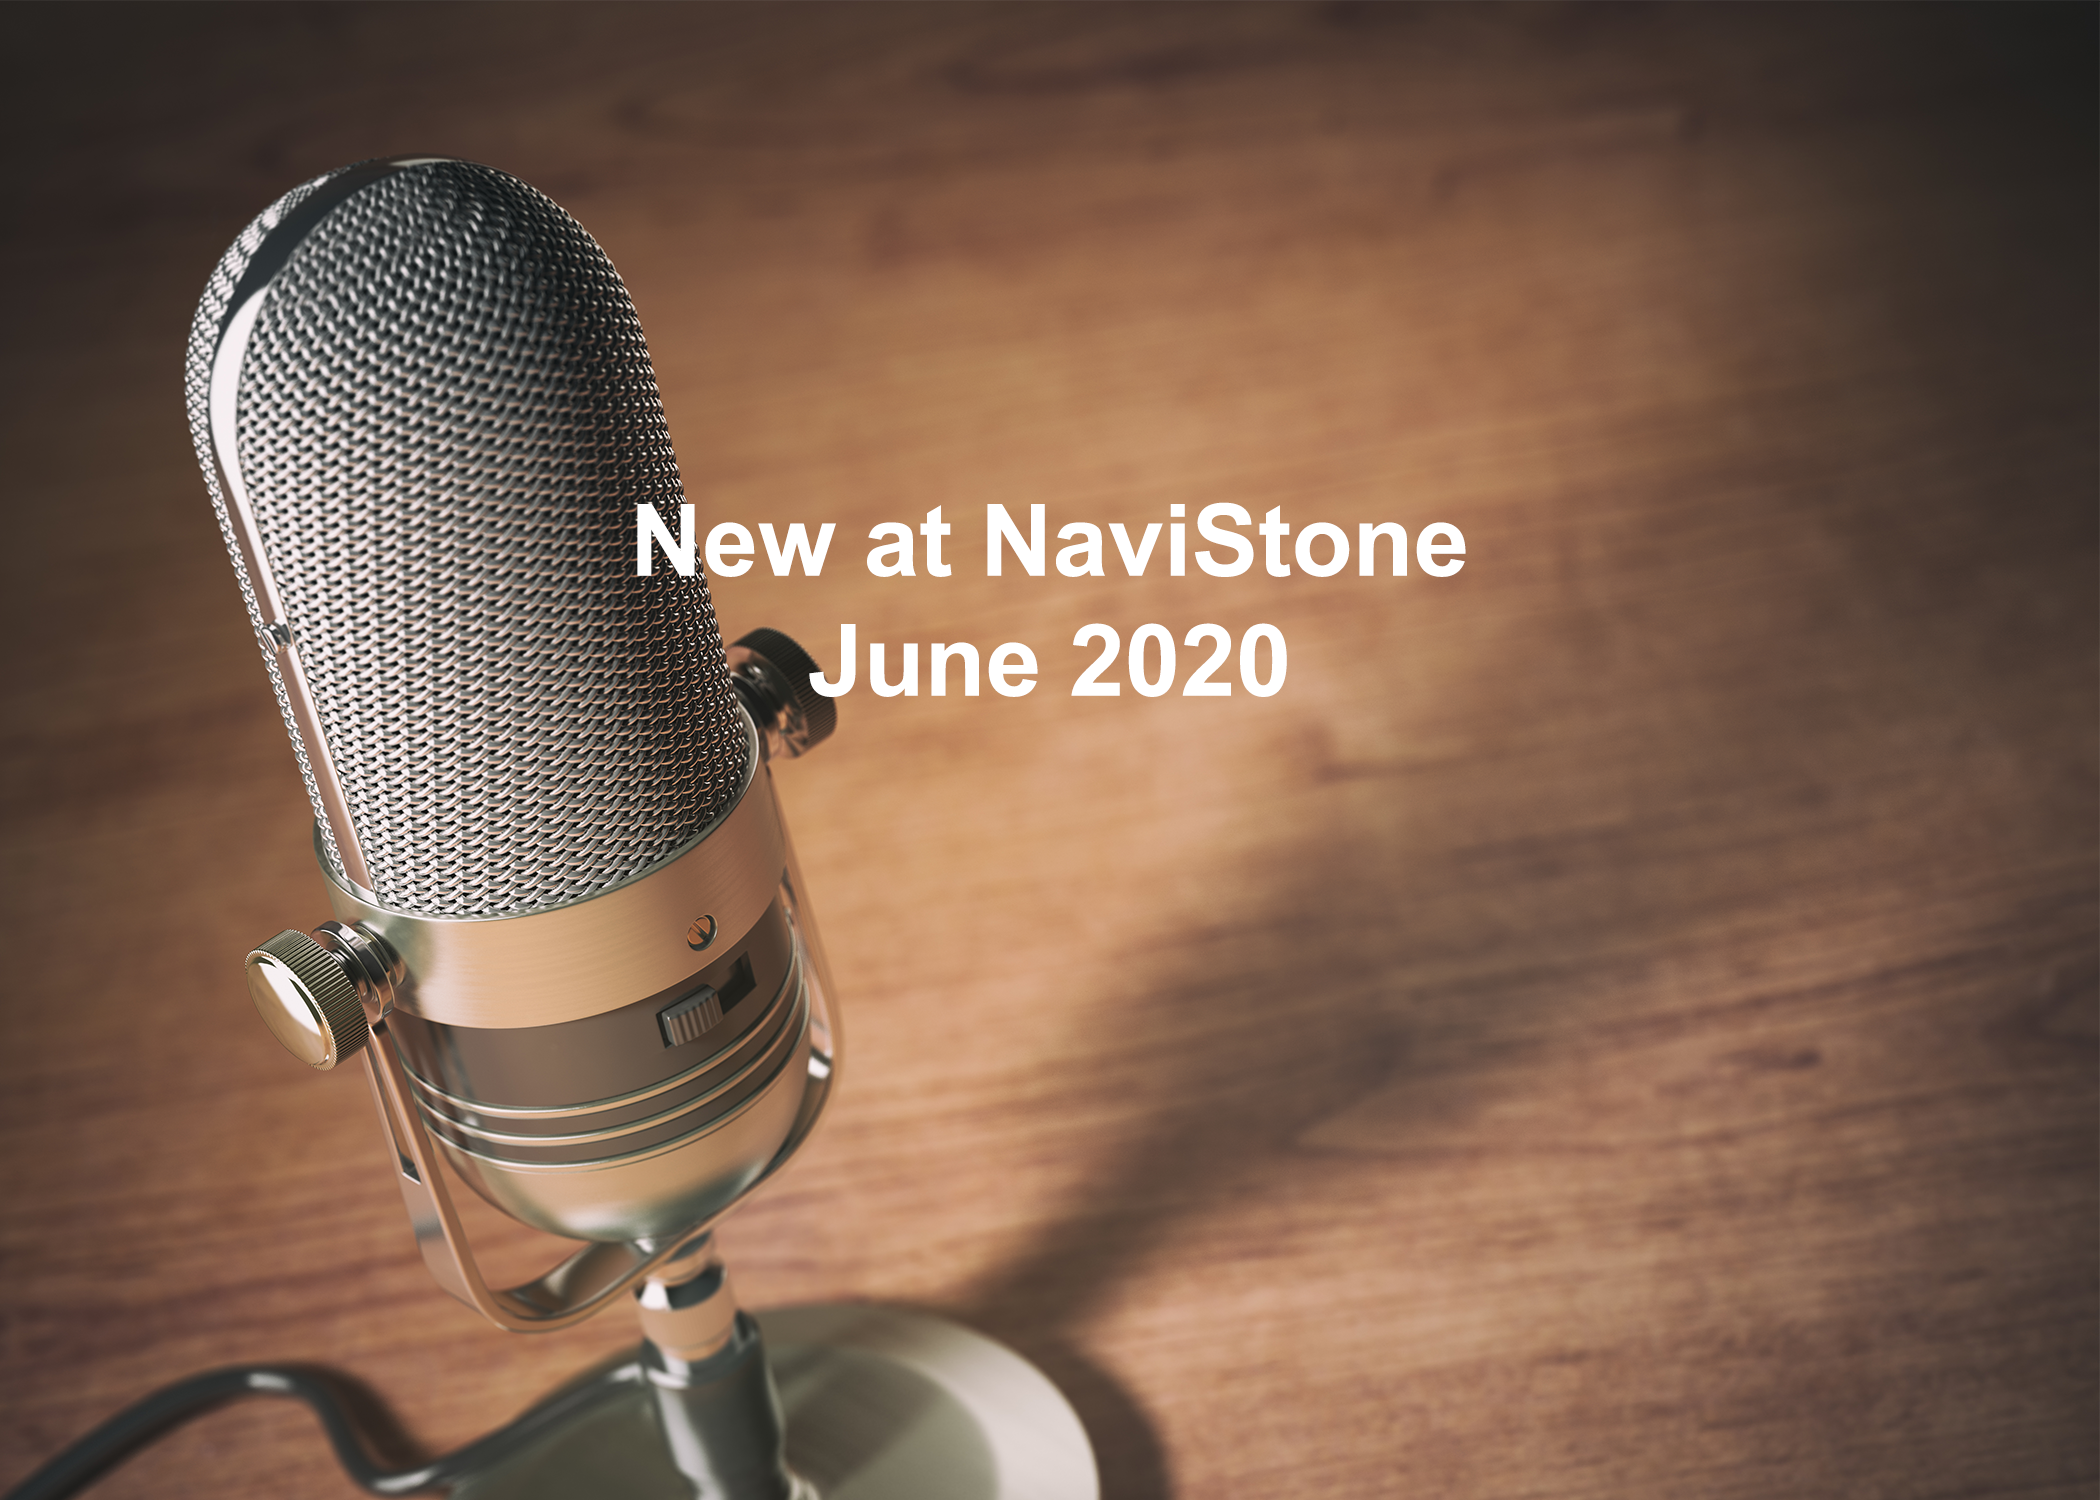 New at NaviStone June 2020